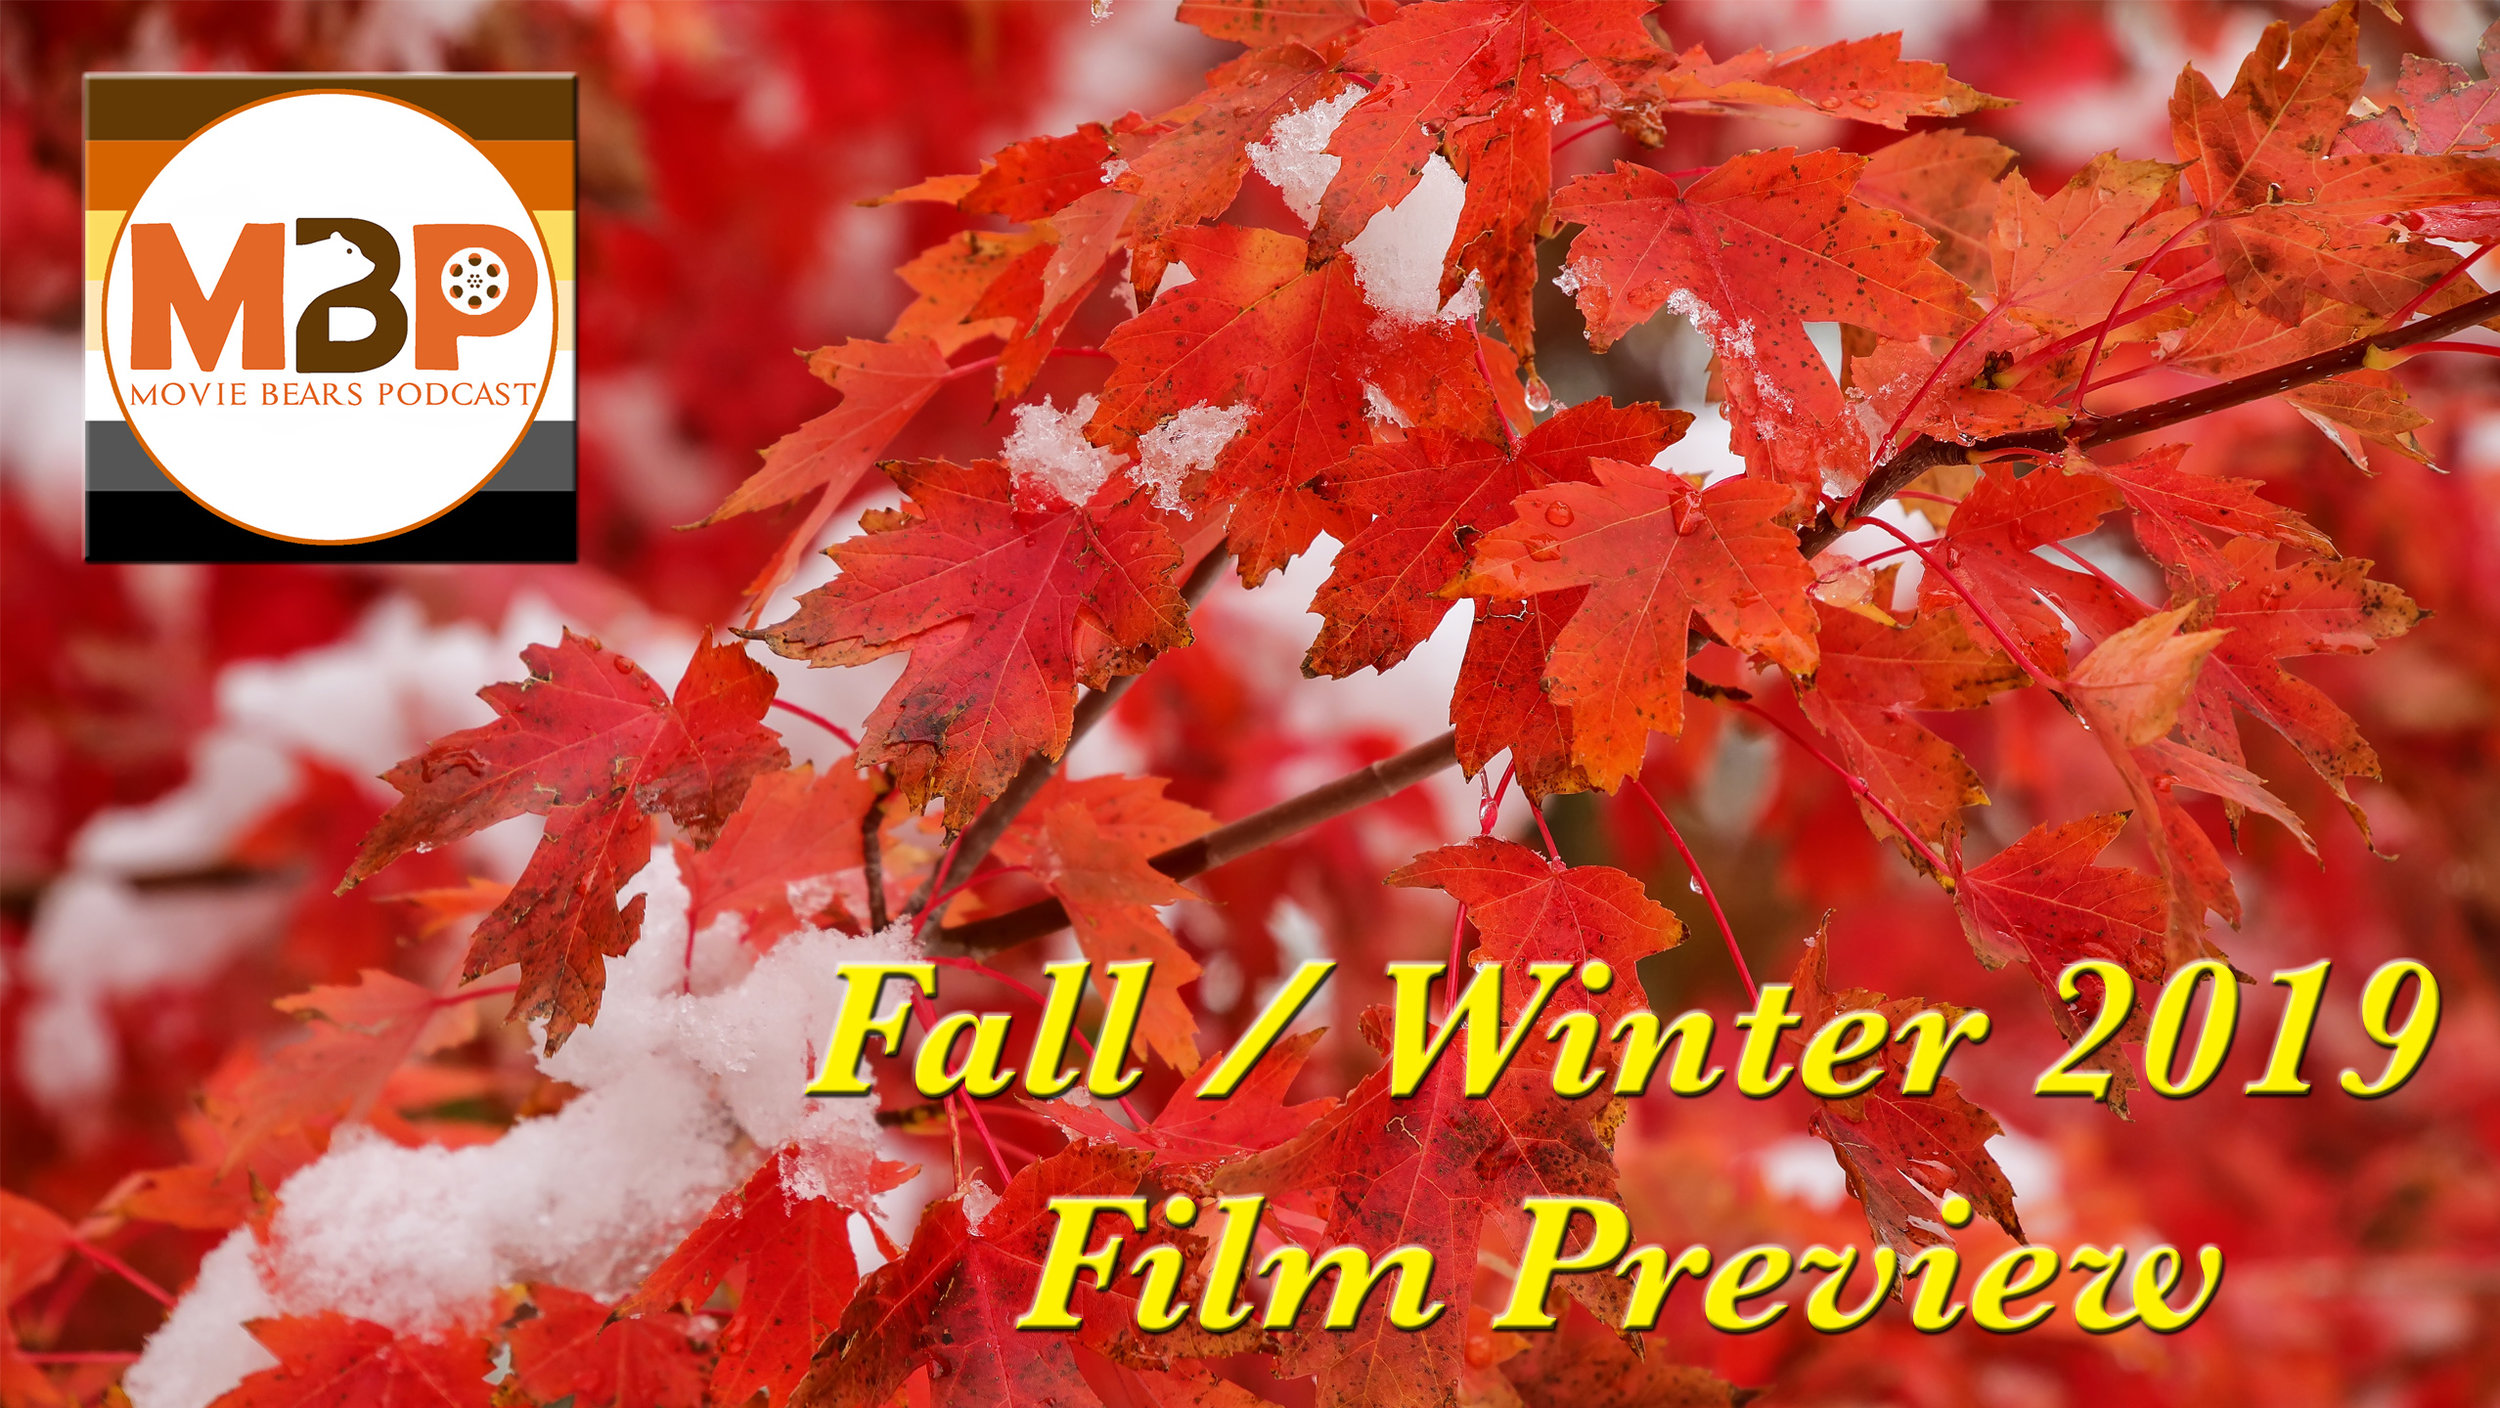 MBP e336 - 2019 Fall / Winter Movie Preview (9/3/19)    Summer movie season is behind us and we're staring down the final stretch of 2019, and while it feels the year is flying by, there are still a lot of movies to look forward to! On this Fall/Year-End Preview episode we talk about some of the upcoming films that have us most excited. So listen to see if any of the films we're looking forward to also have your interest!